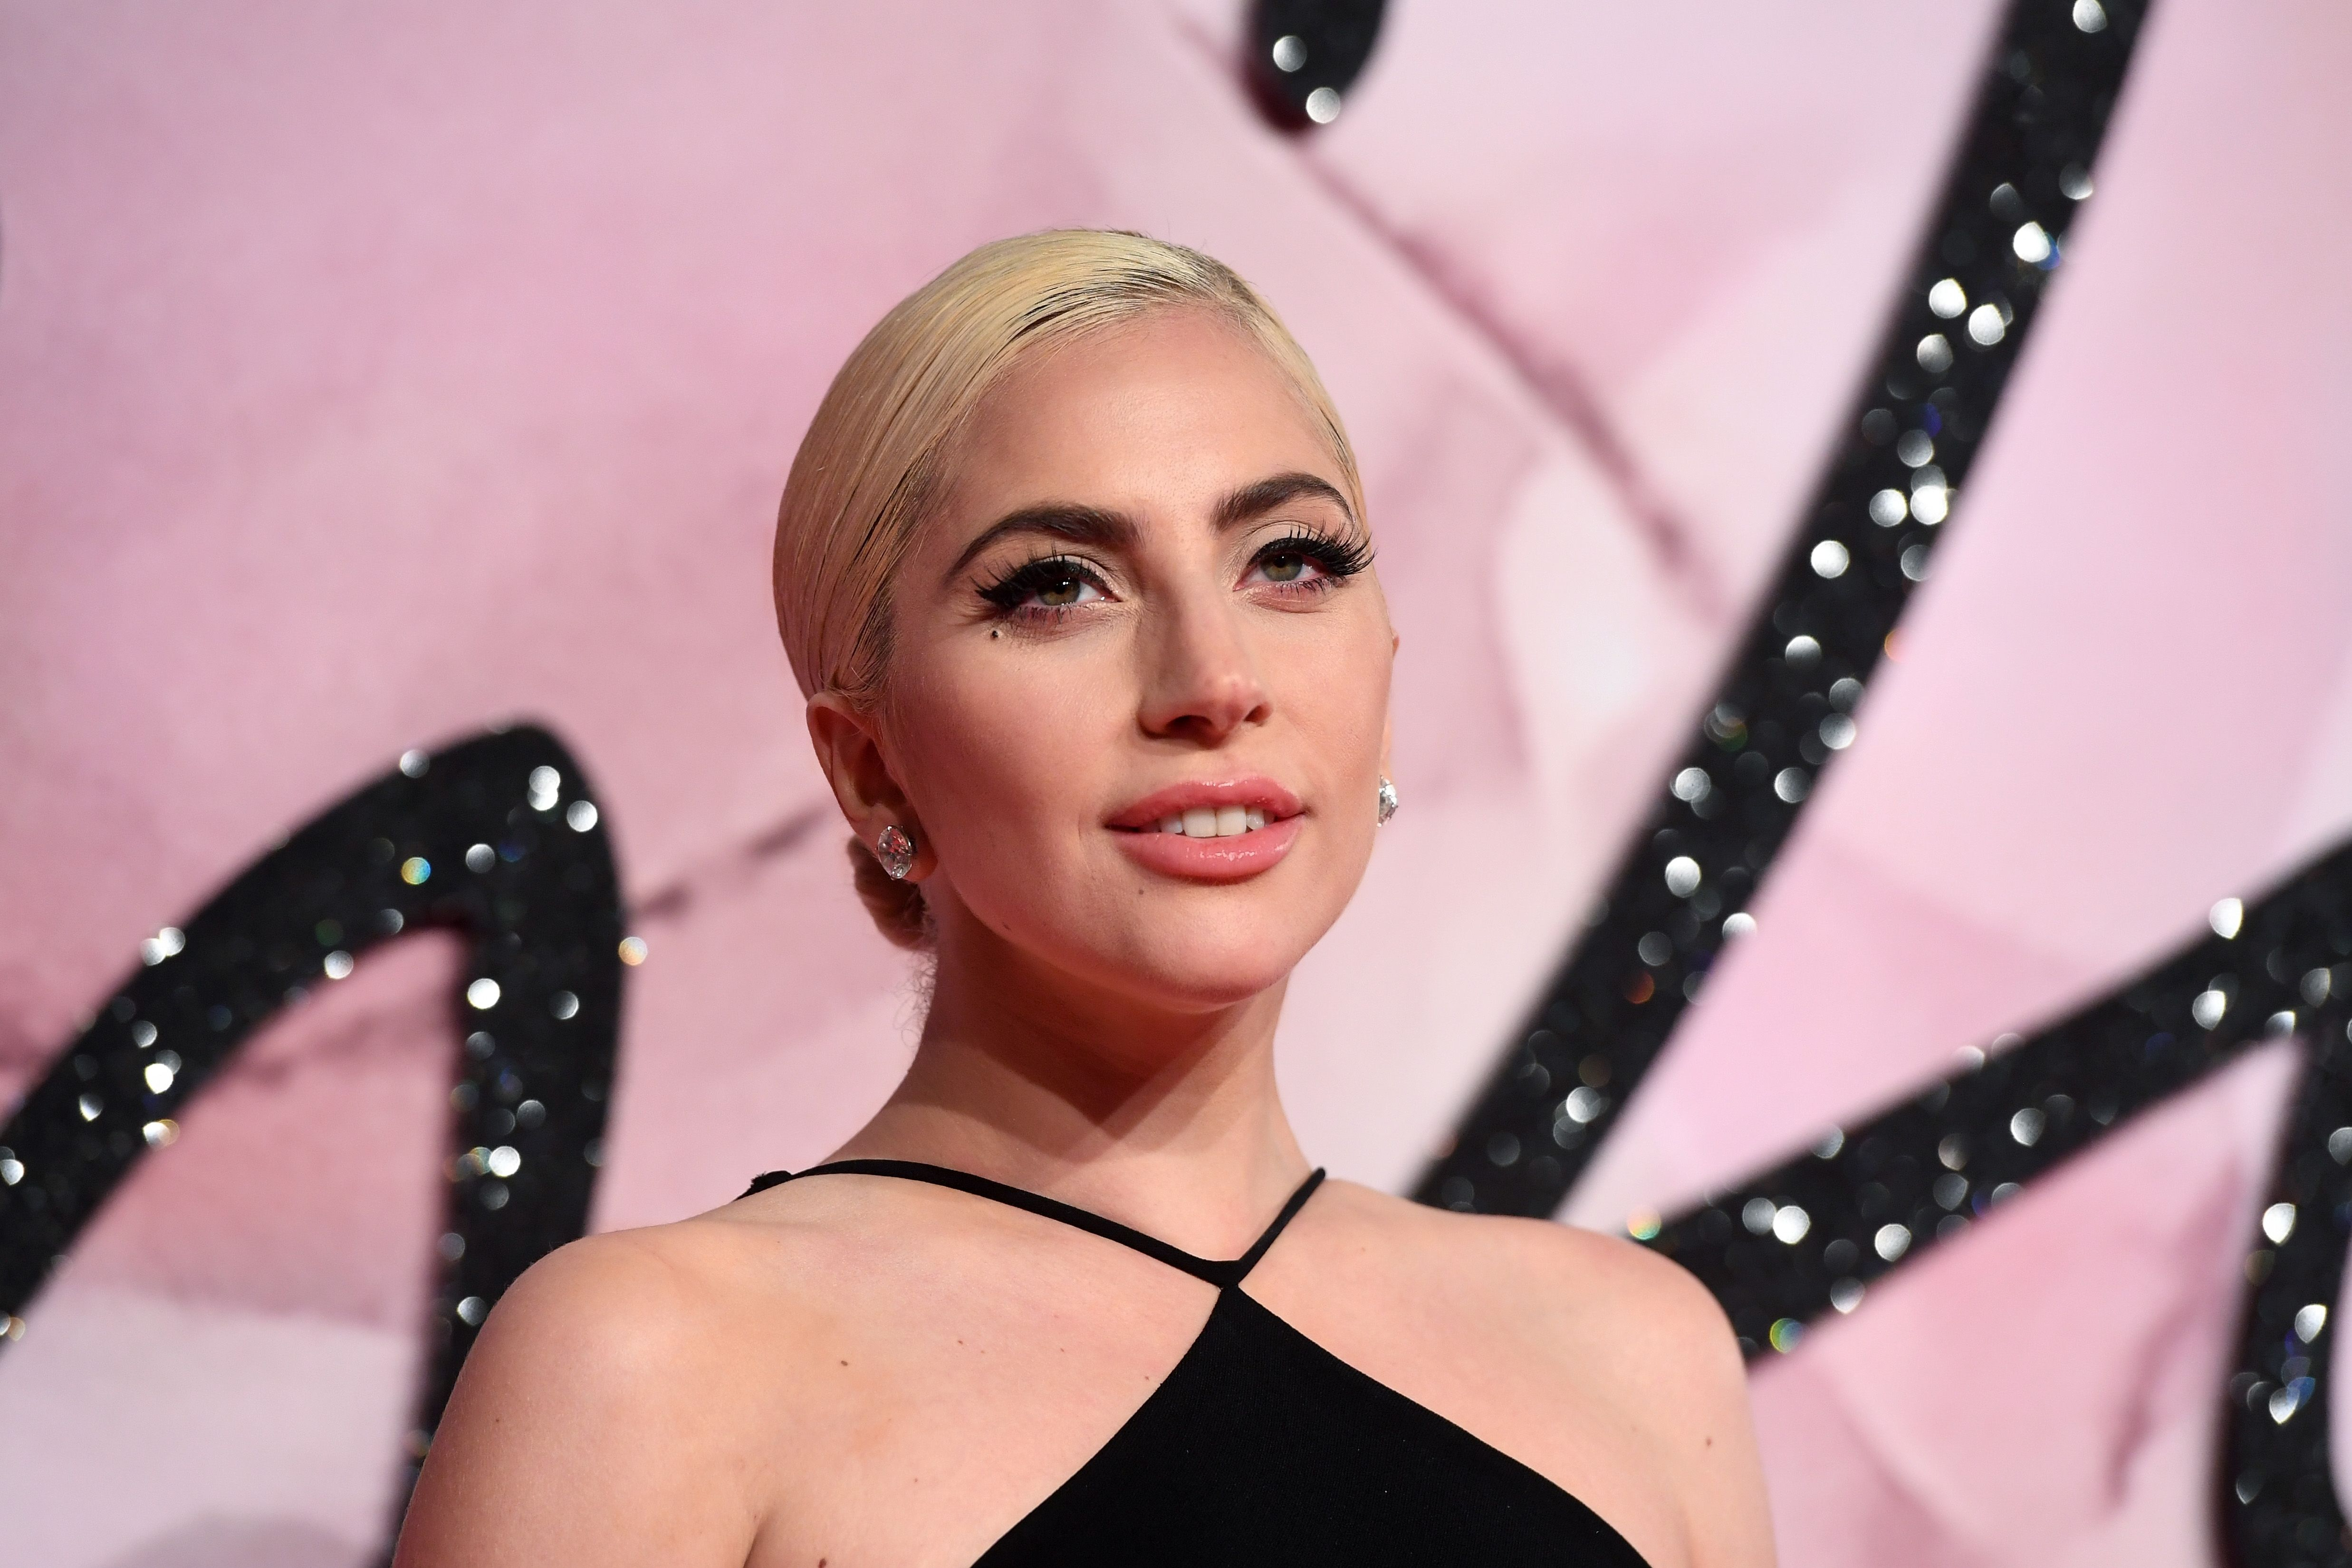 Lady Gaga Just Dyed Her Hair Bubblegum Pink in Honor of 'A Star Is Born'